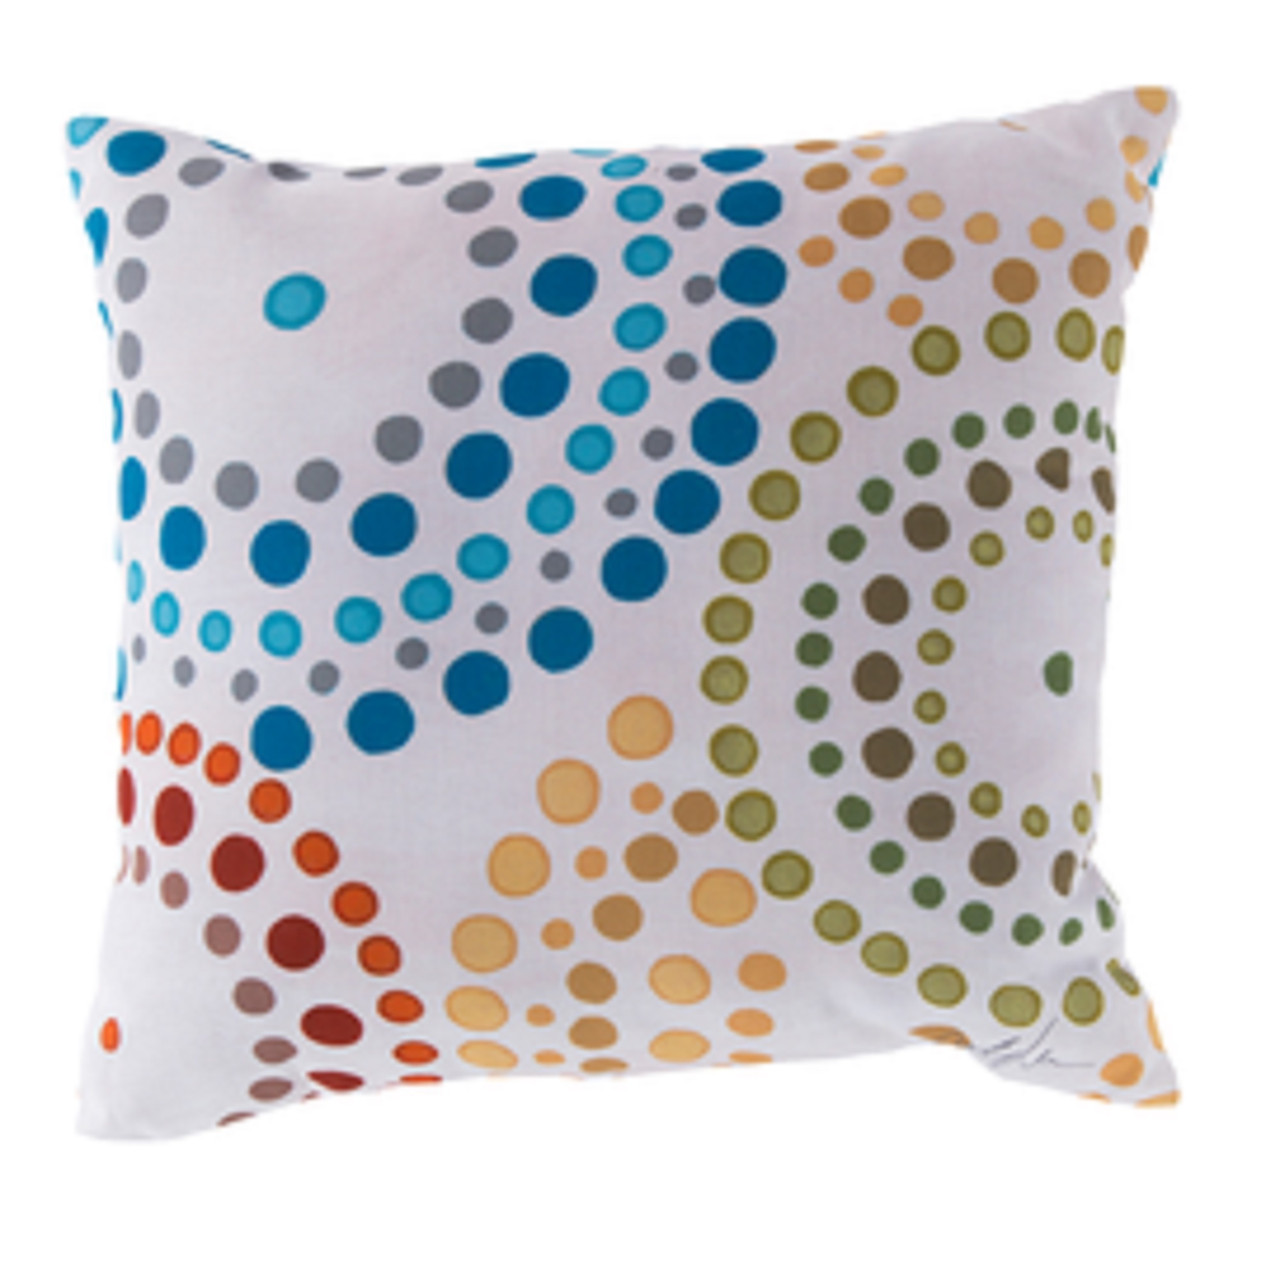 18 Multi Colored Nautica Shower Bursts Square Outdoor Pillow Shell